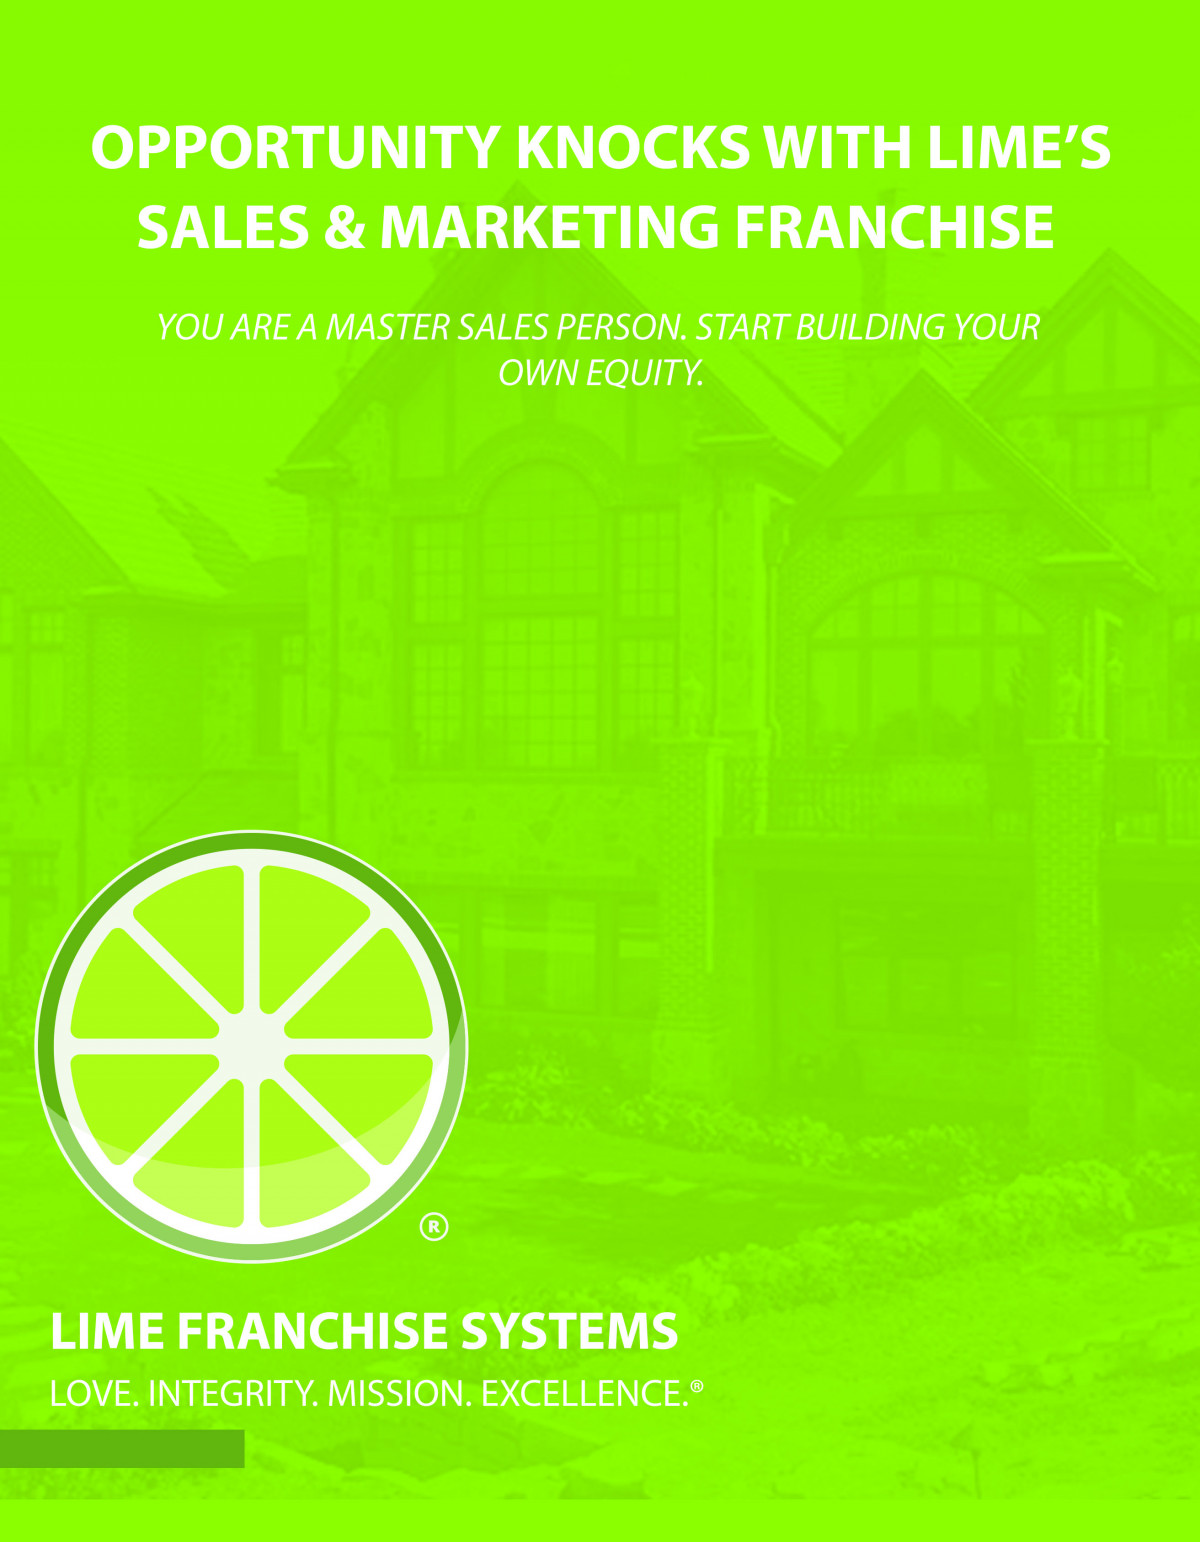 Opportunity Knocks With LIME's Sales & Marketing Franchise 1 of 3